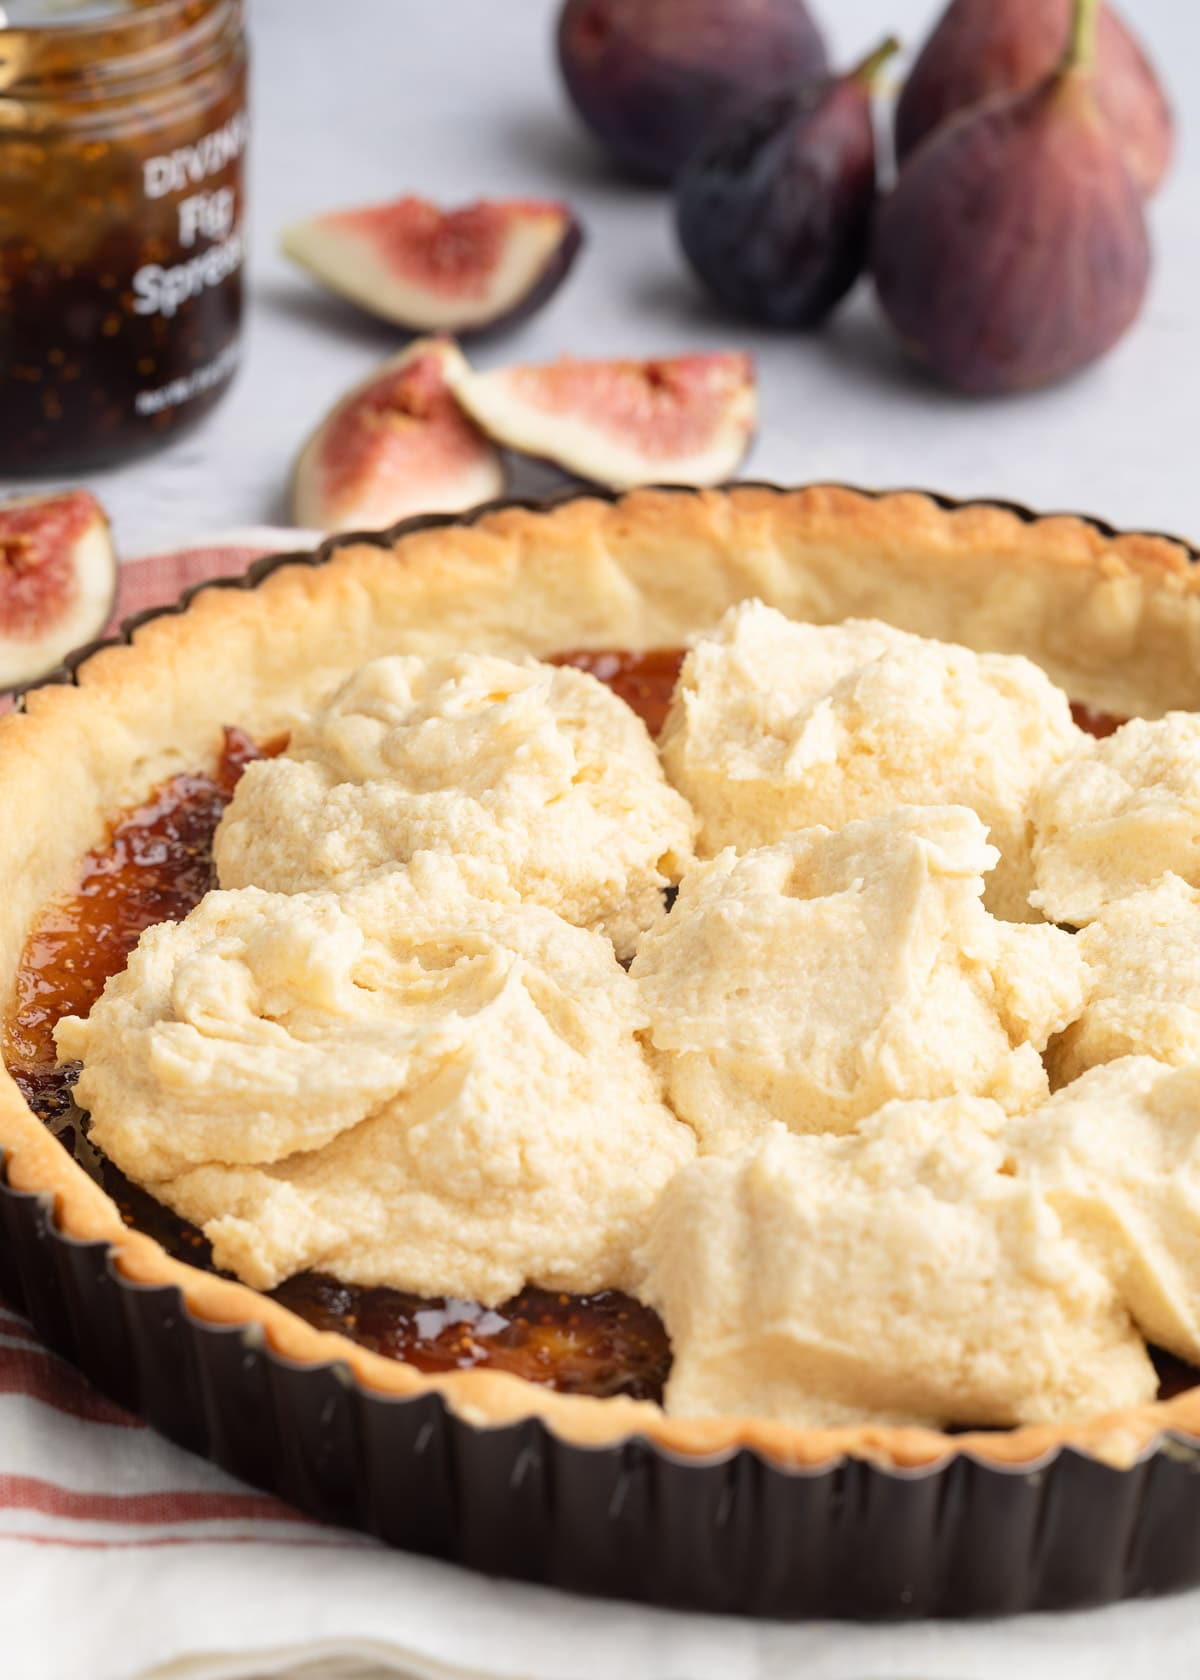 dollops of almond cream in a par-baked tart shell spread with fig jam